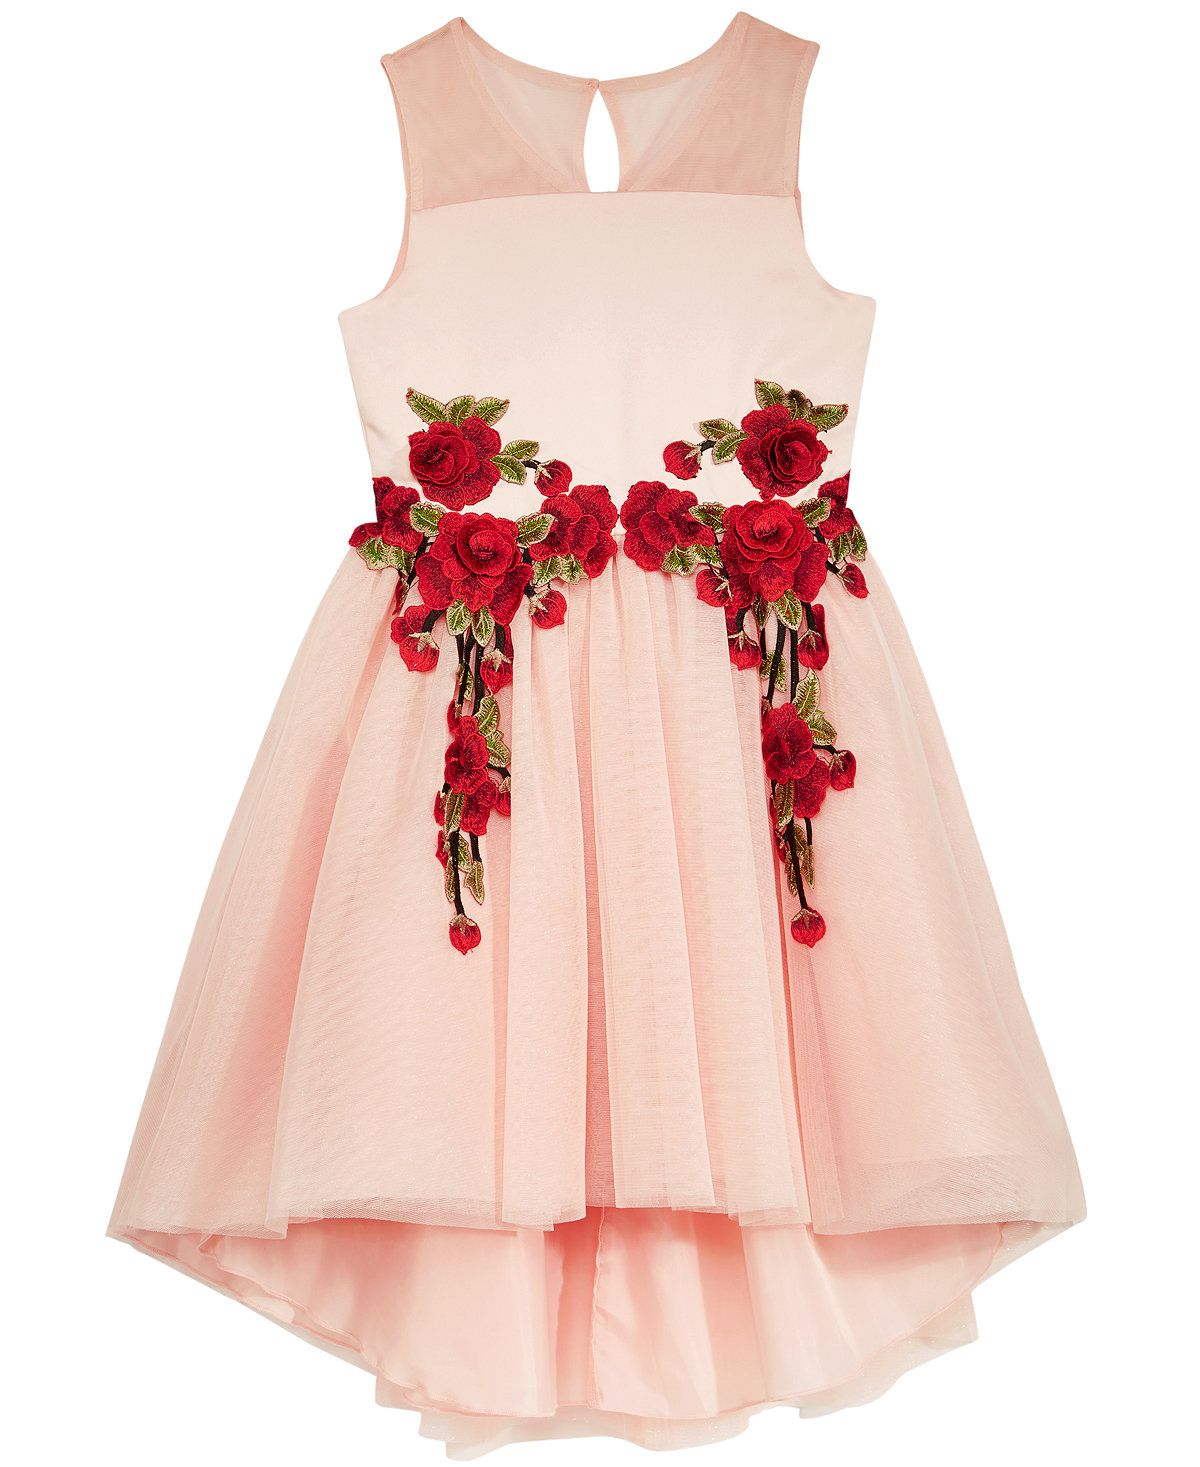 605f7d087171 Rose Appliqué Party Dress